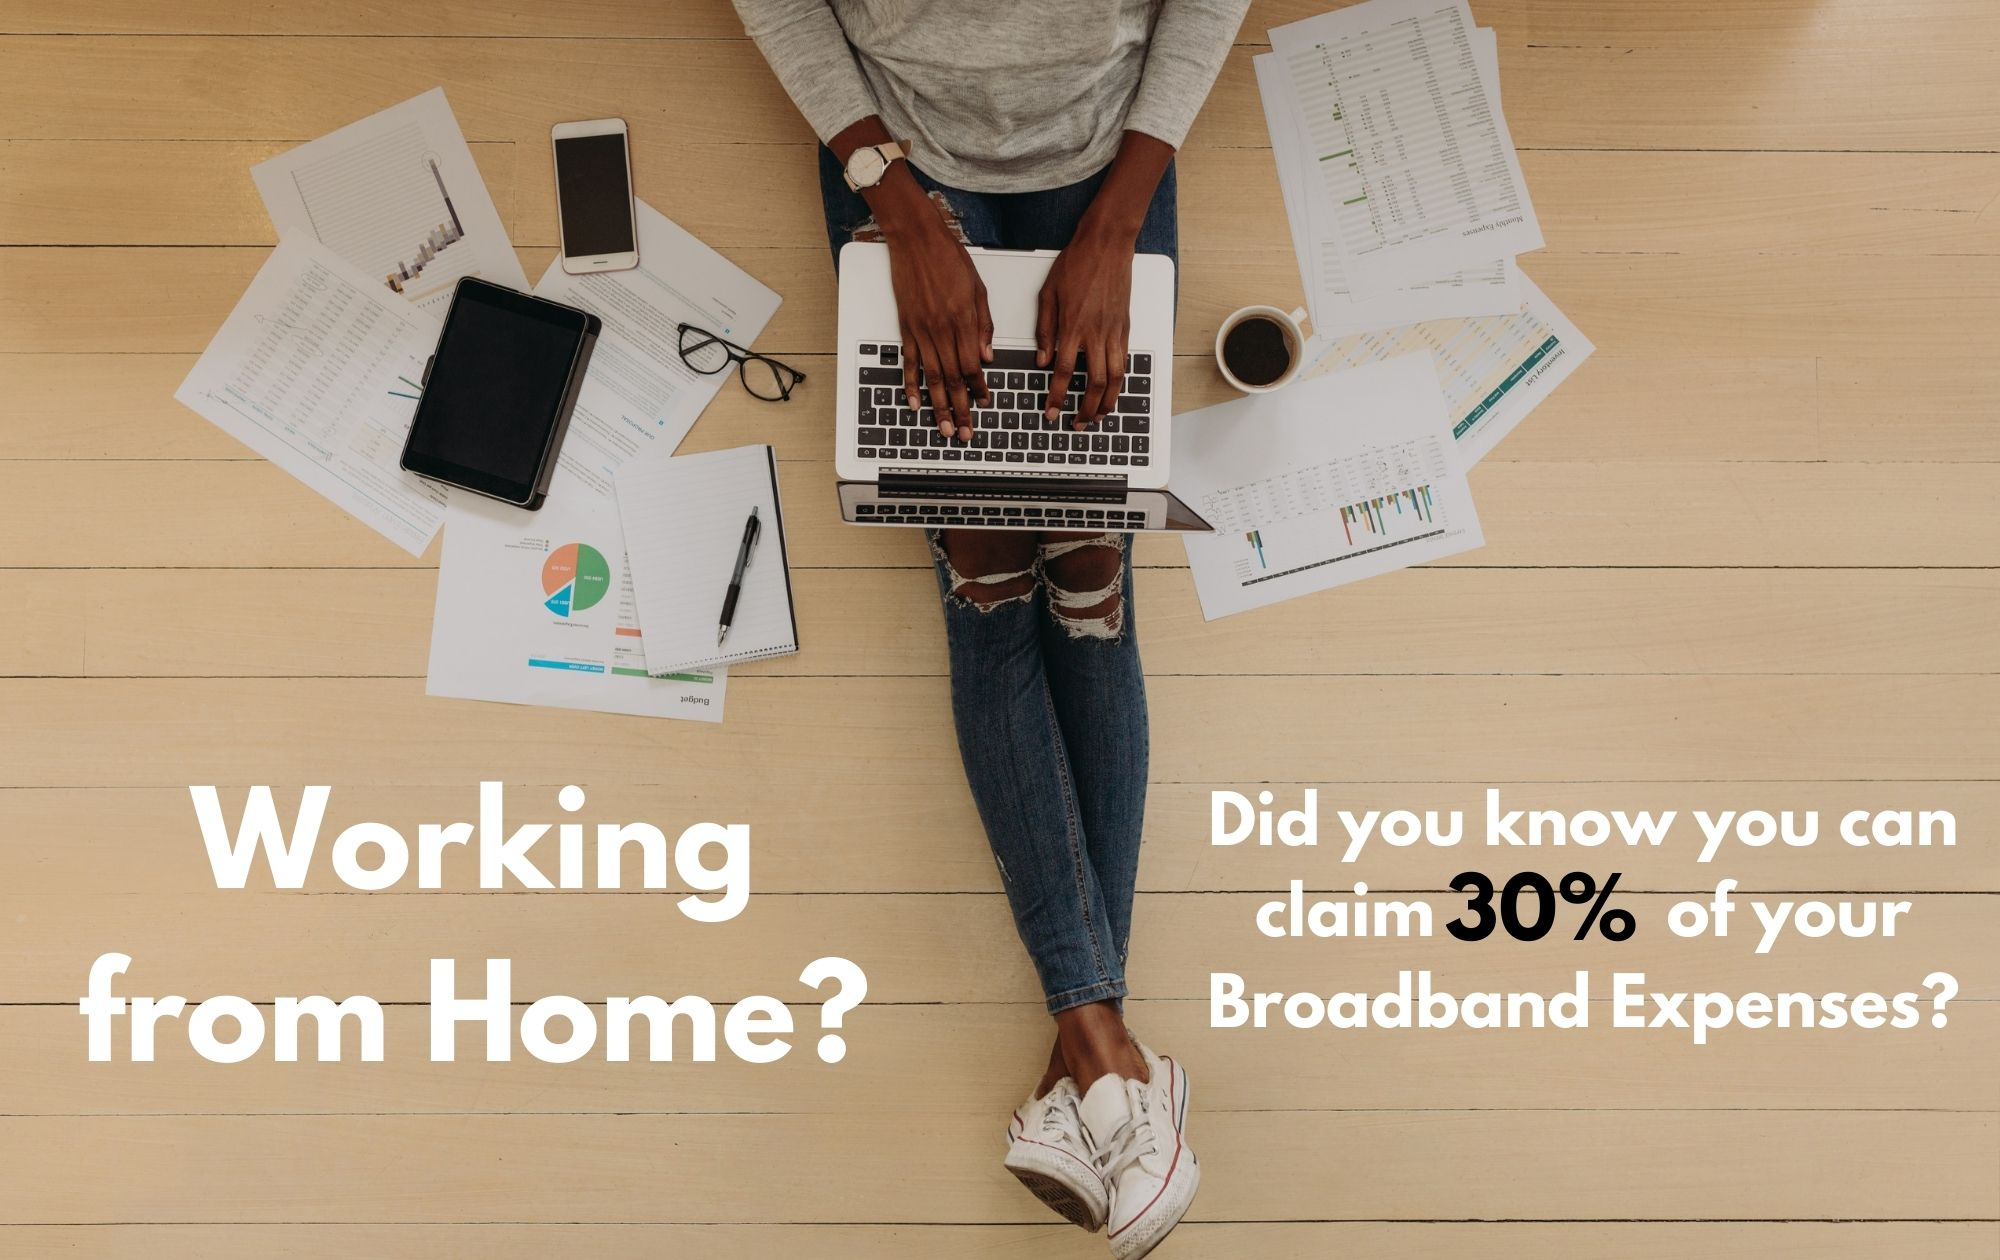 Working from Home? Did You Know you Can claim 30% of your Broadband Expenses?